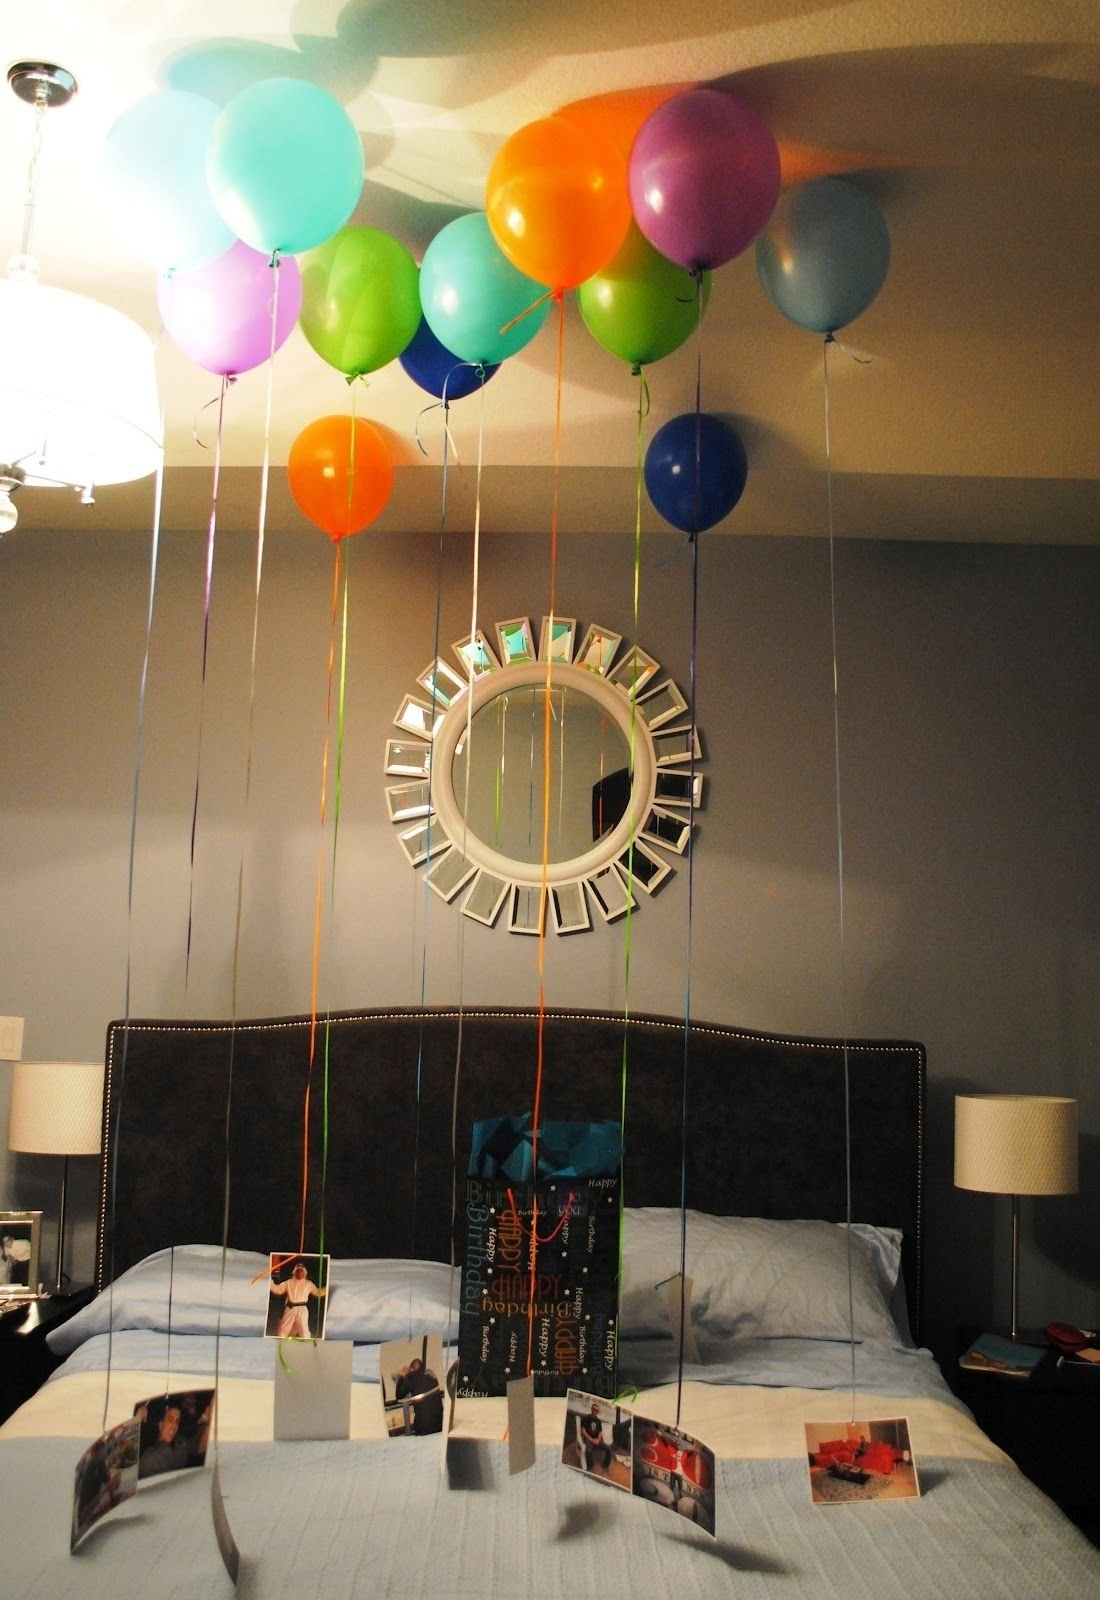 10 Spectacular Ideas For A Surprise Birthday Party mind my beeswax hubbys birthday balloon surprise birthday 1 2020